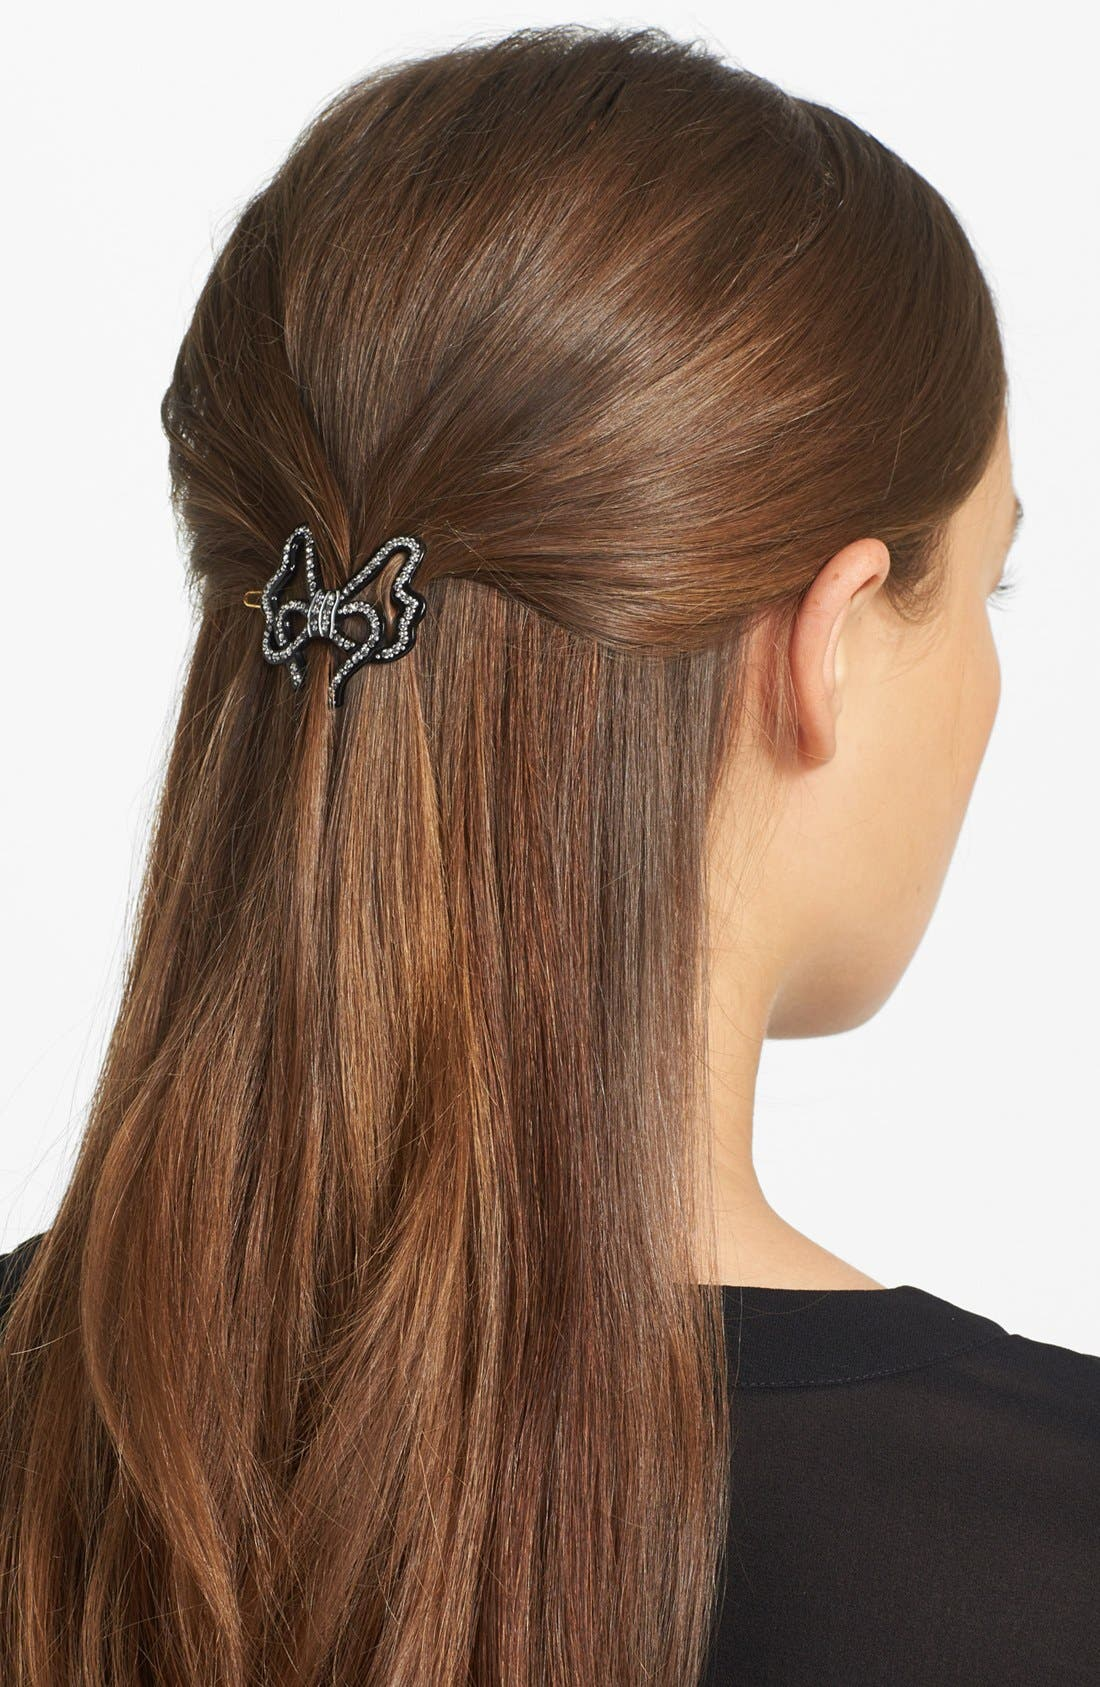 Alternate Image 1 Selected - France Luxe 'Dashing' Crystal Bow Hair Clip